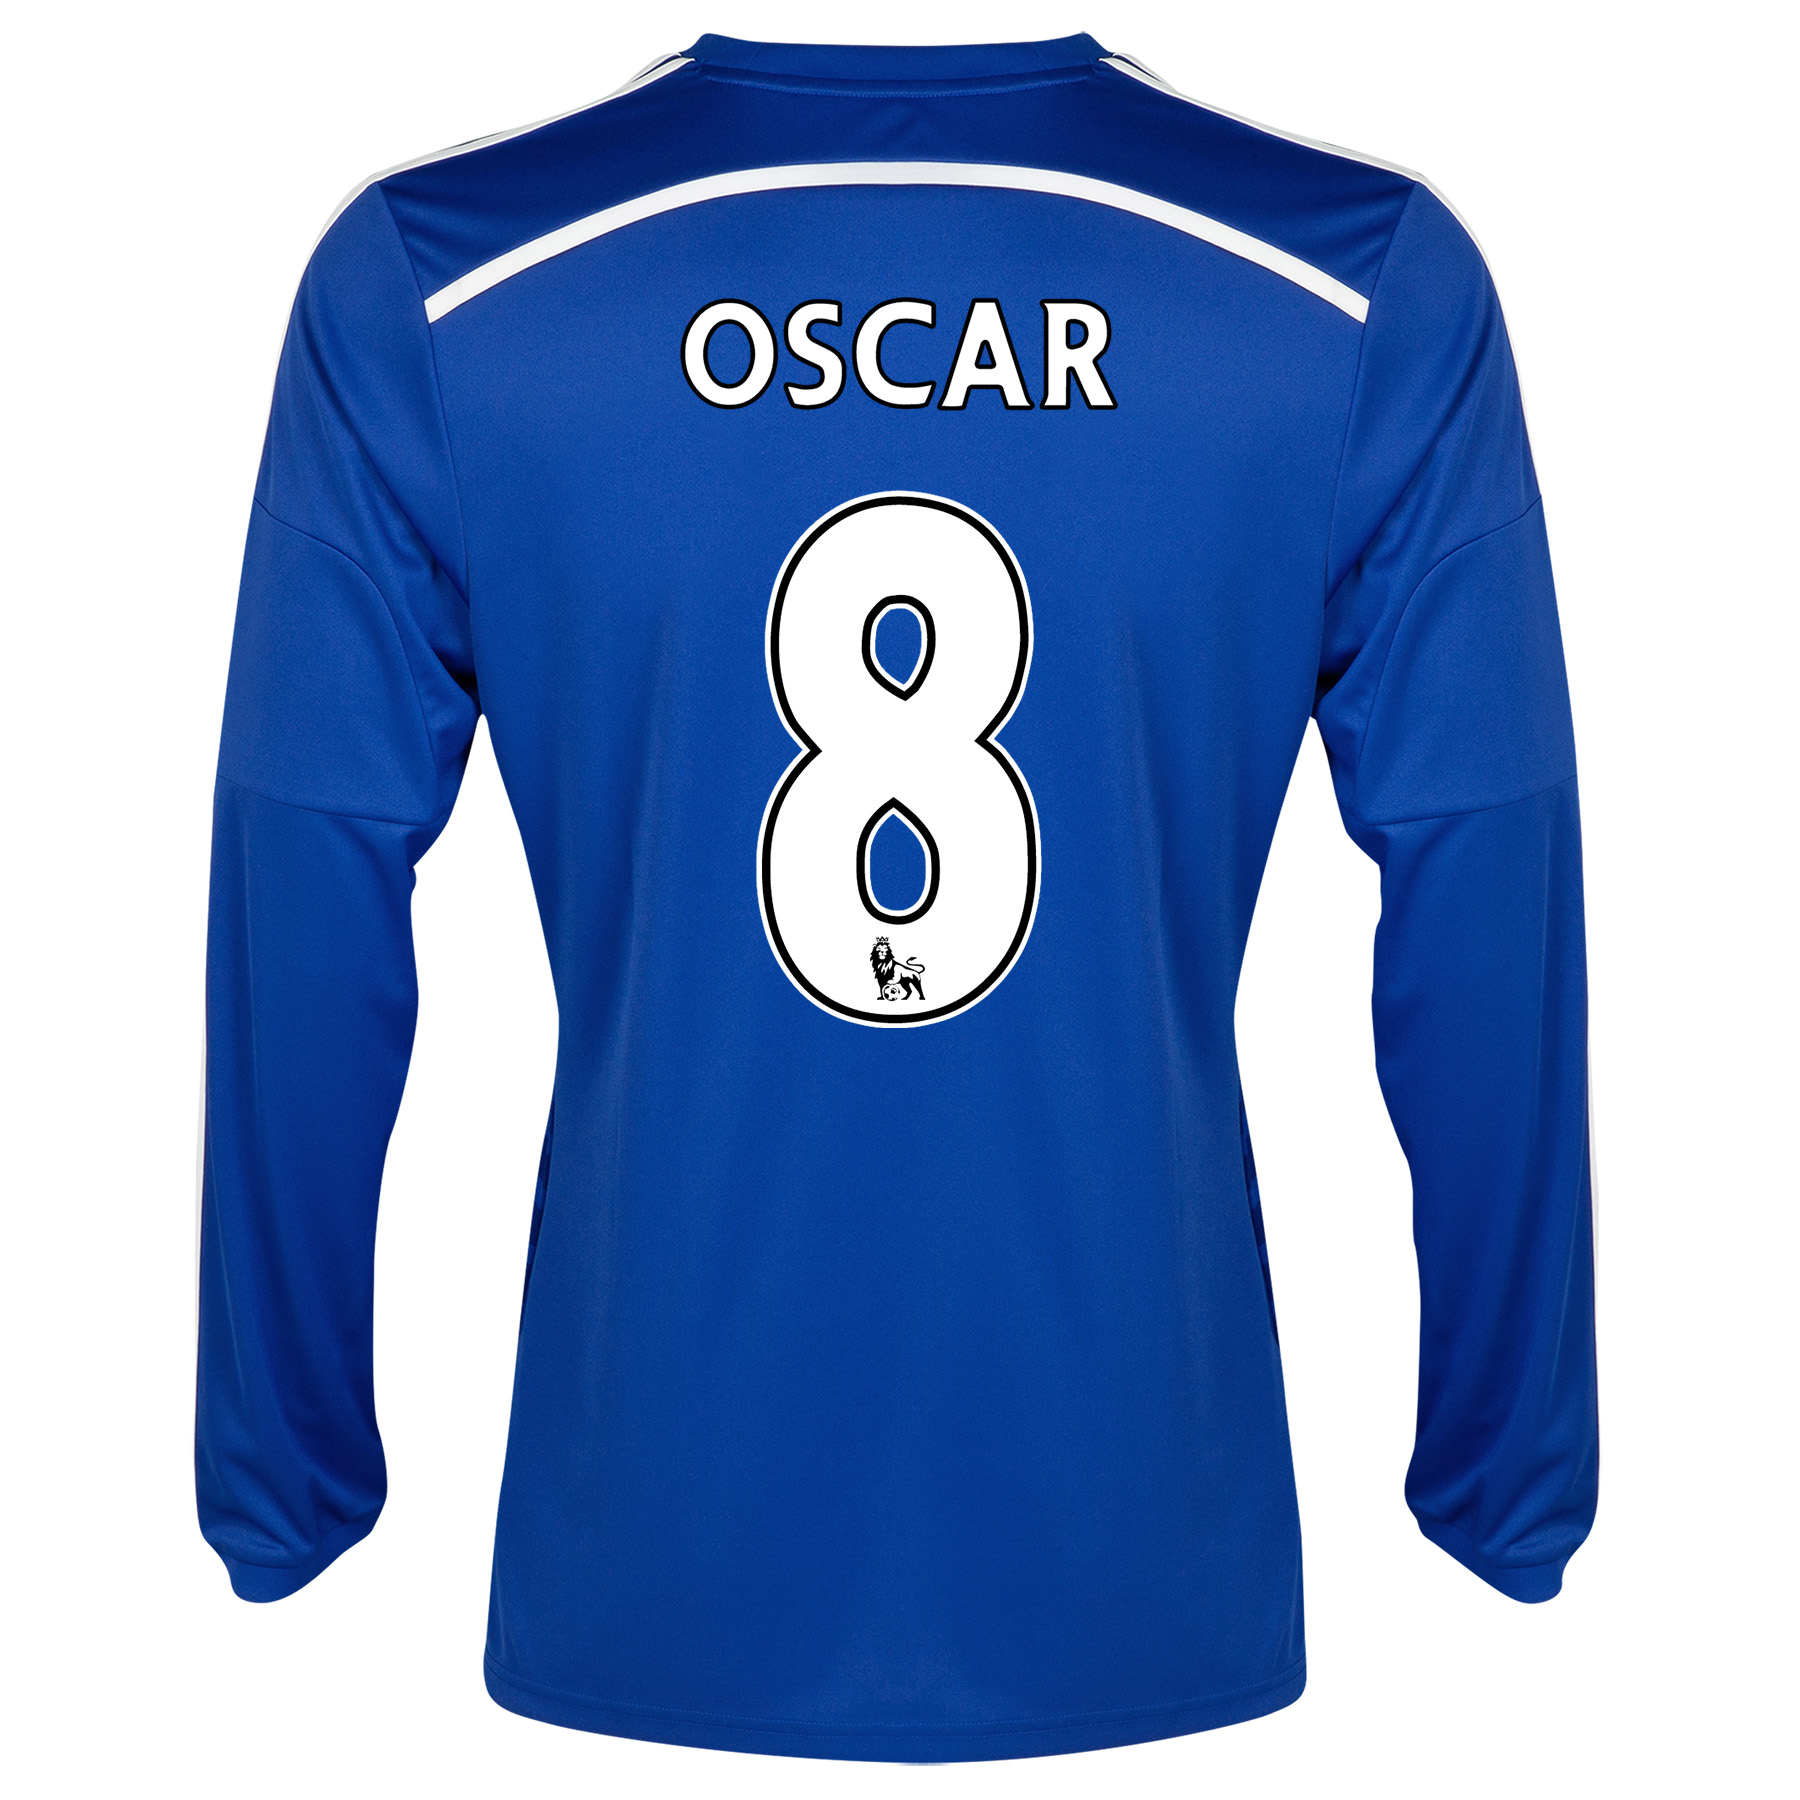 Chelsea Home Shirt 2014/15 - Long Sleeve - Kids Blue with Oscar 11 printing